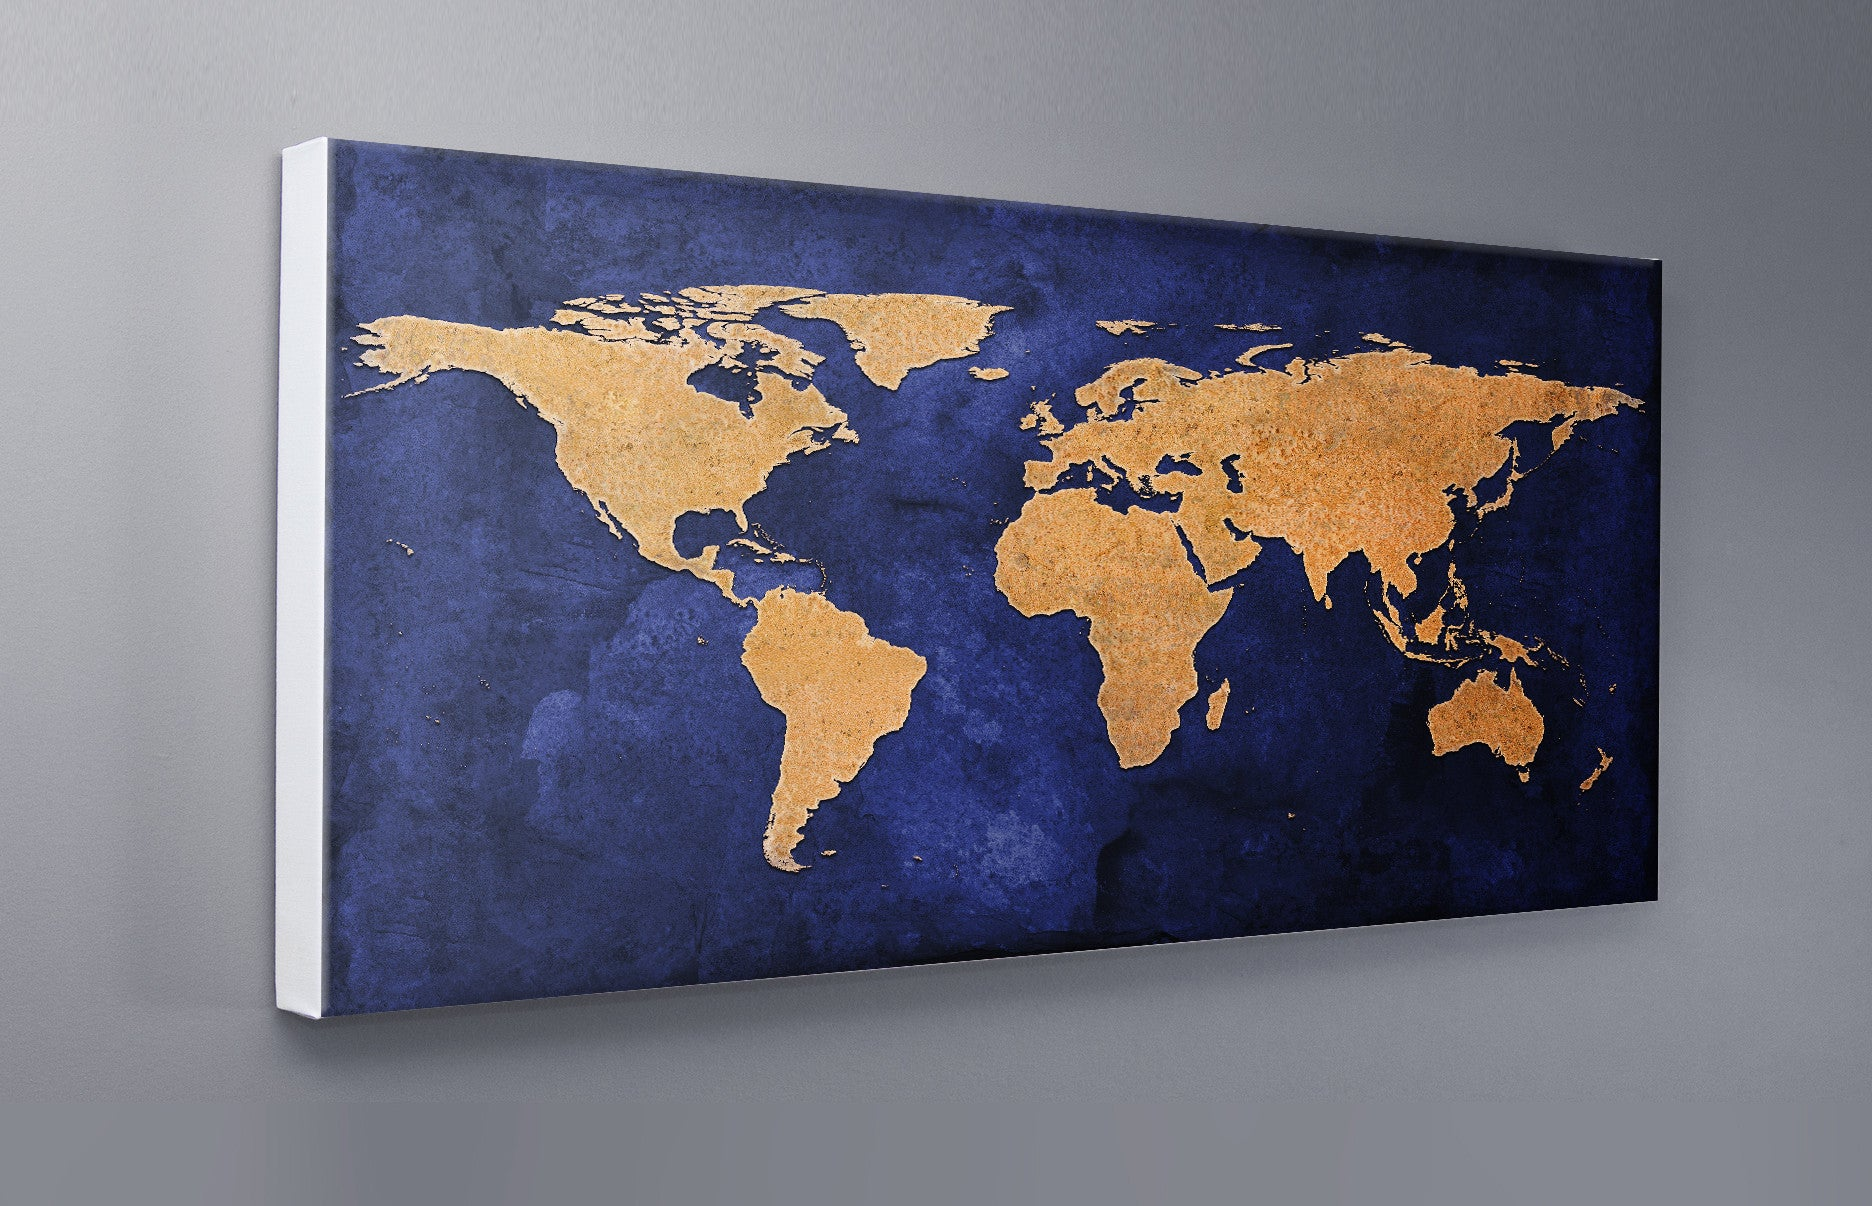 Blue and gold grunge world map canvas wall print lets get shirty blue and gold grunge world map canvas wall print custom t shirt by lets get shirty gumiabroncs Choice Image